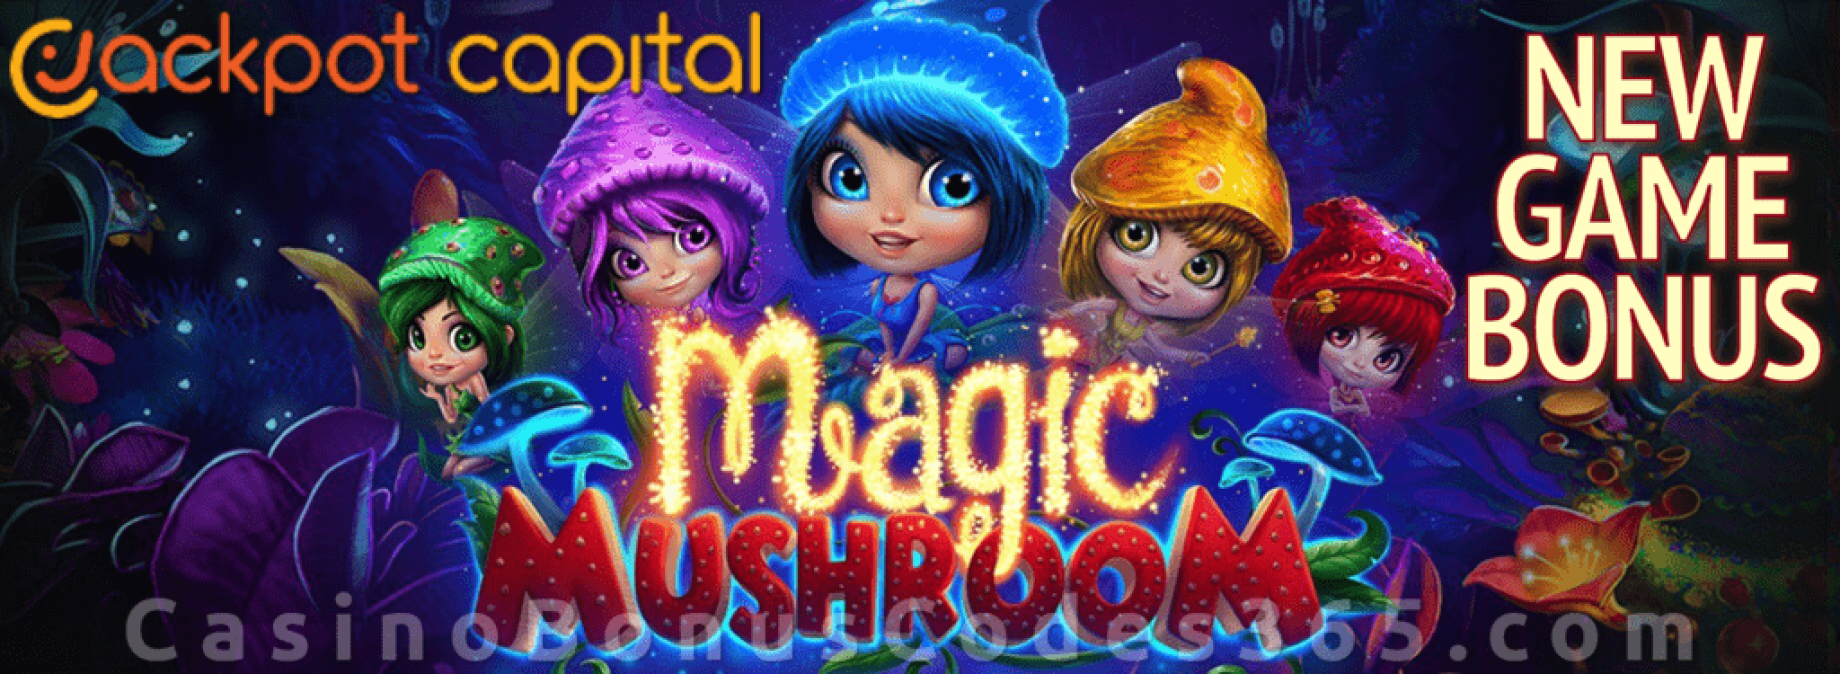 Jackpot Capital Magic Mushroom $1000 Bonus plus 20 FREE Spins Special New RTG Game Offer